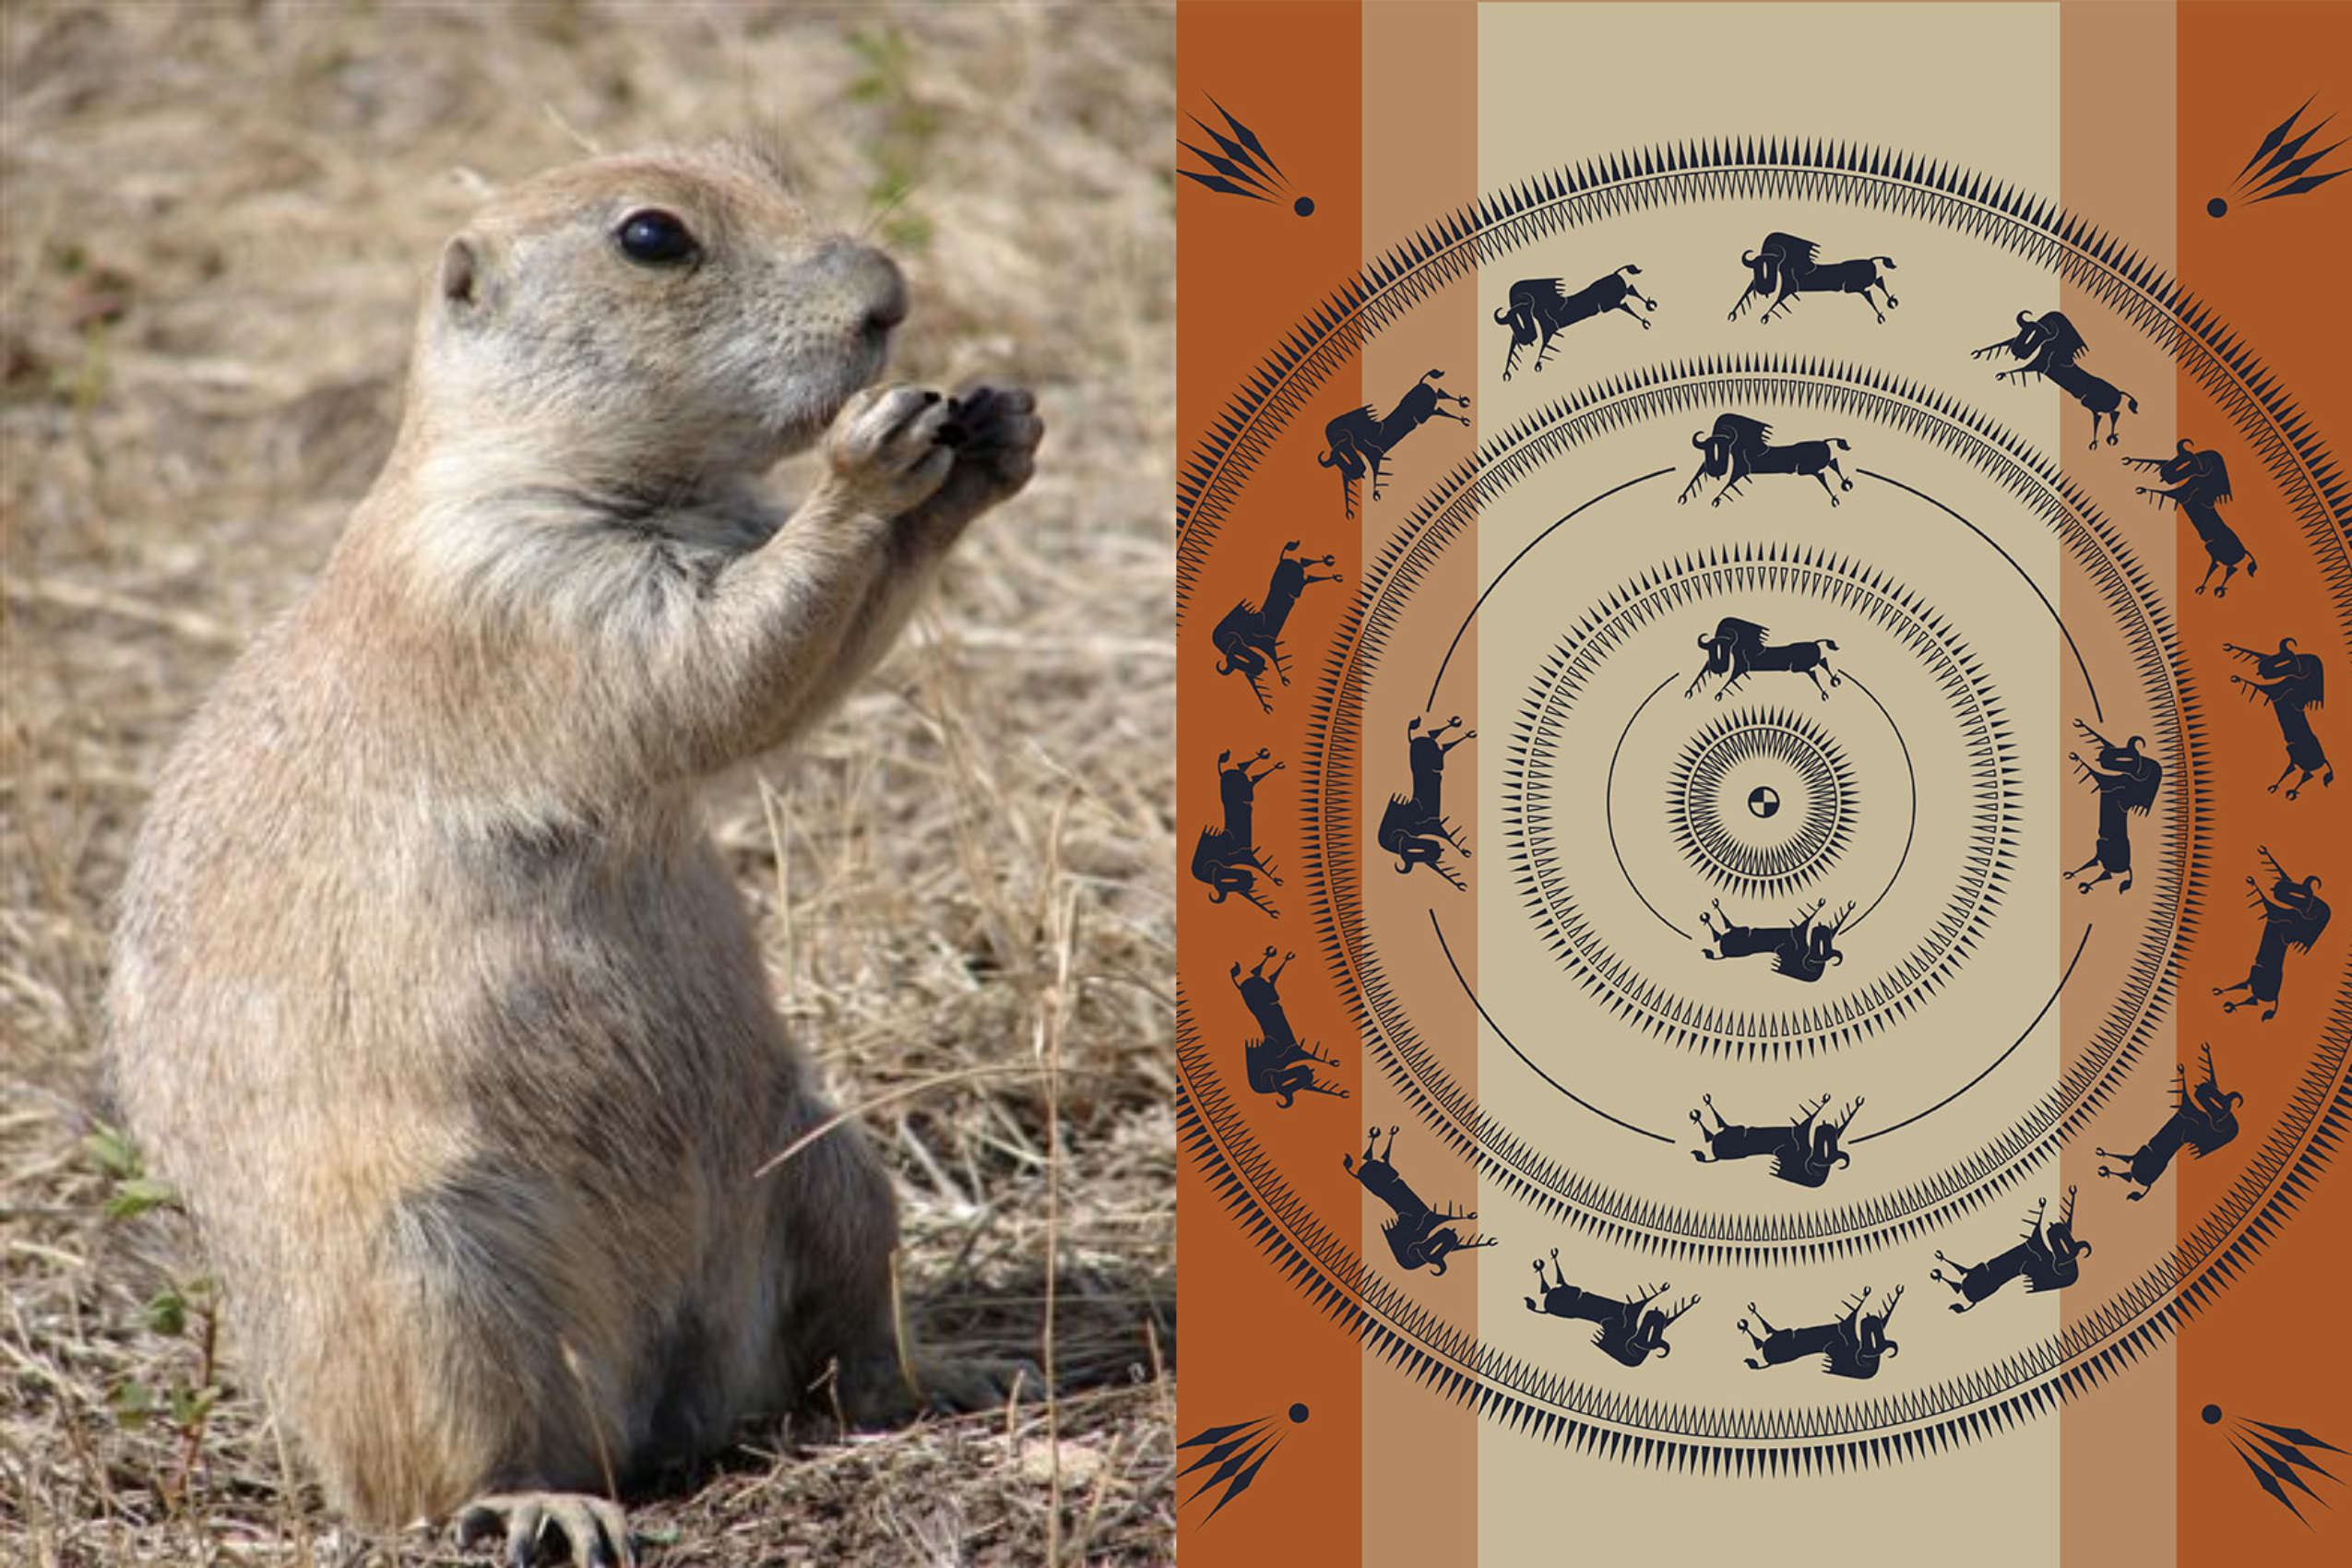 Buffalo Blogs: The Buffalo and the Prairie Dog